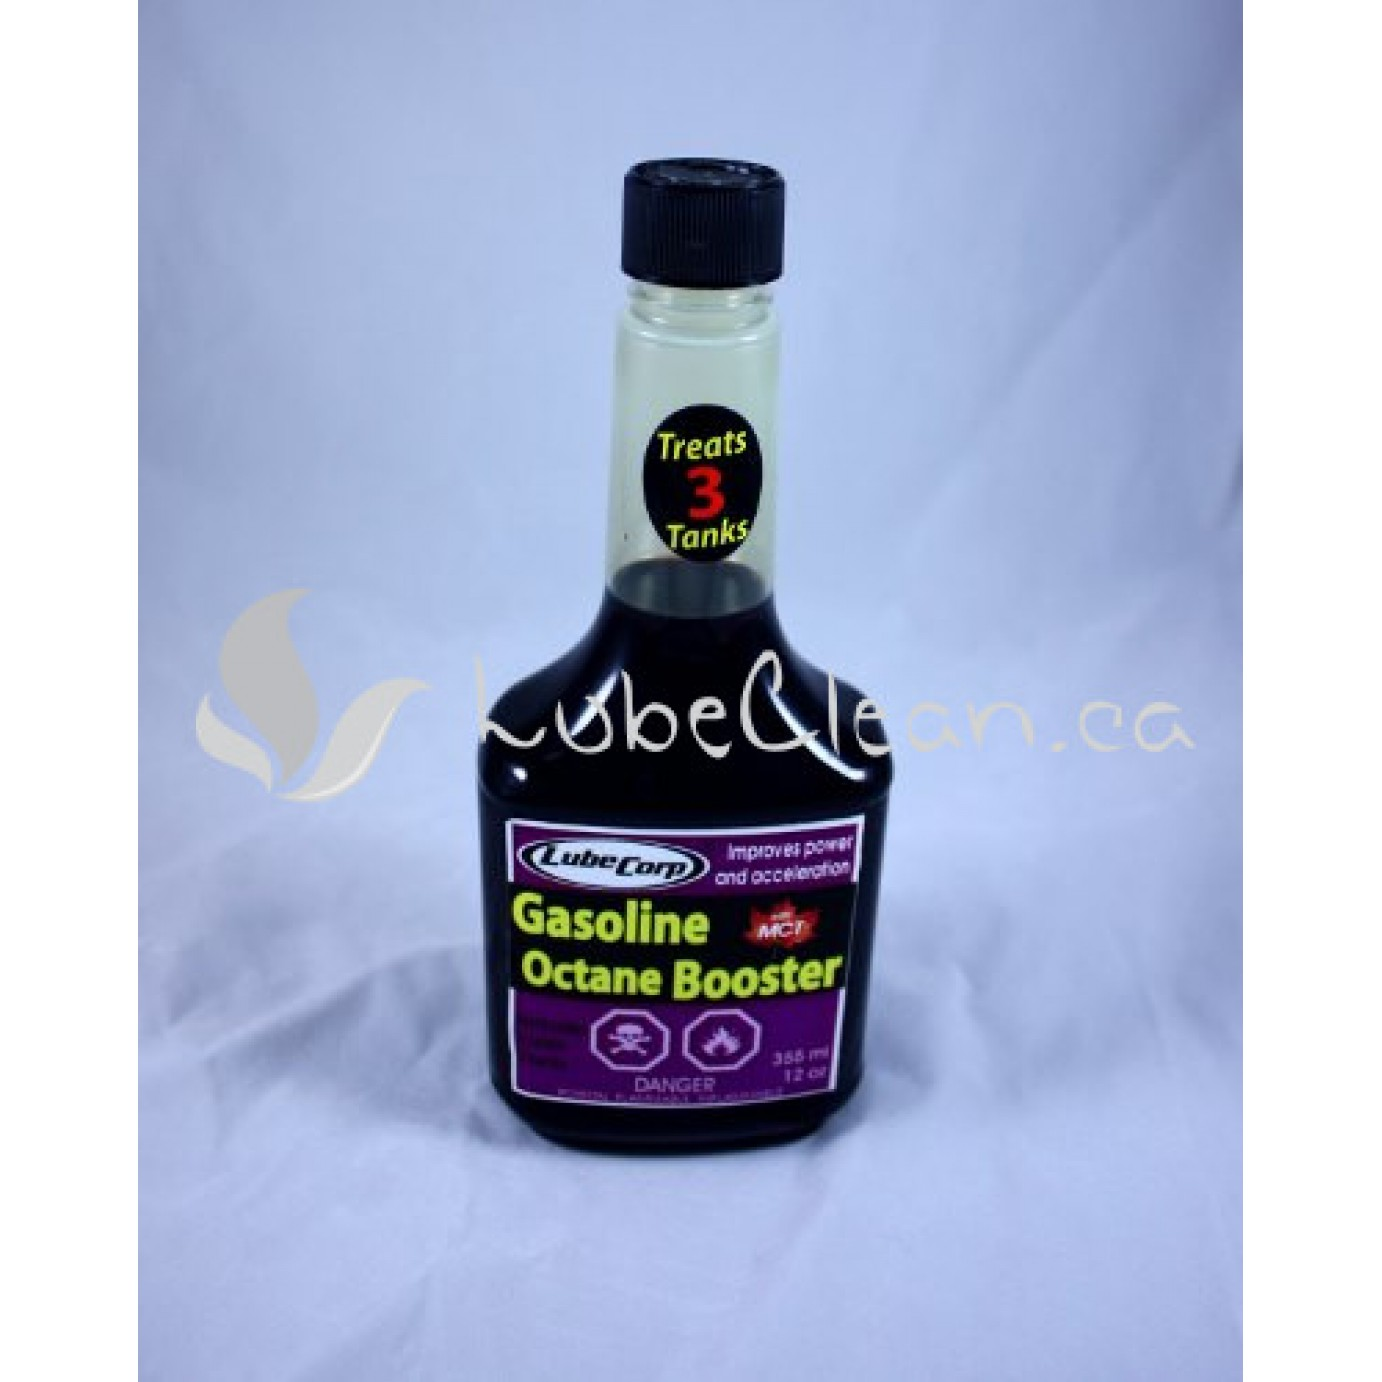 Gasoline Octane Booster 355 ml bottle